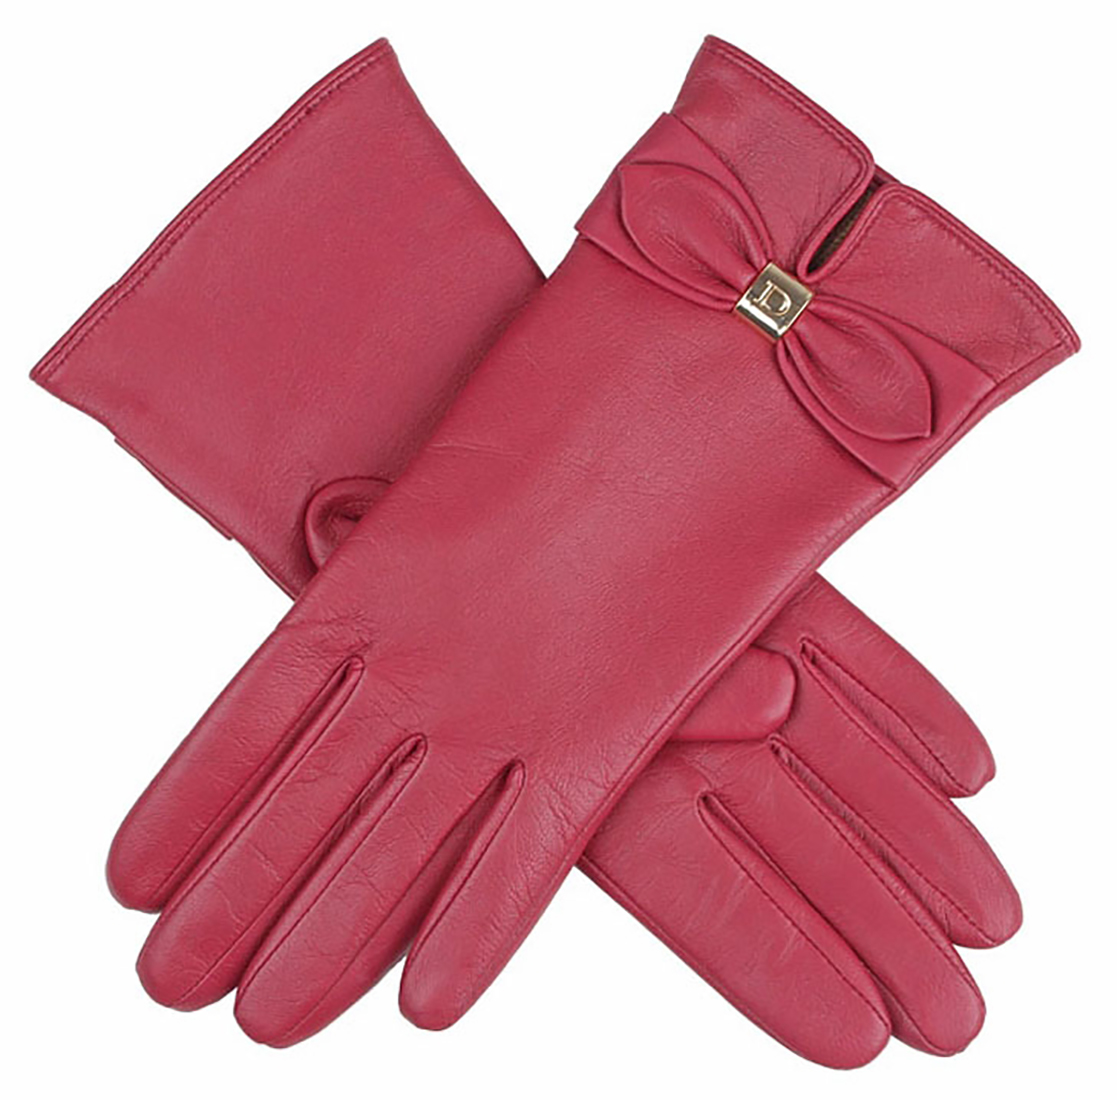 Dents - Ladies Hairsheep Leather Gloves with Bow Detail